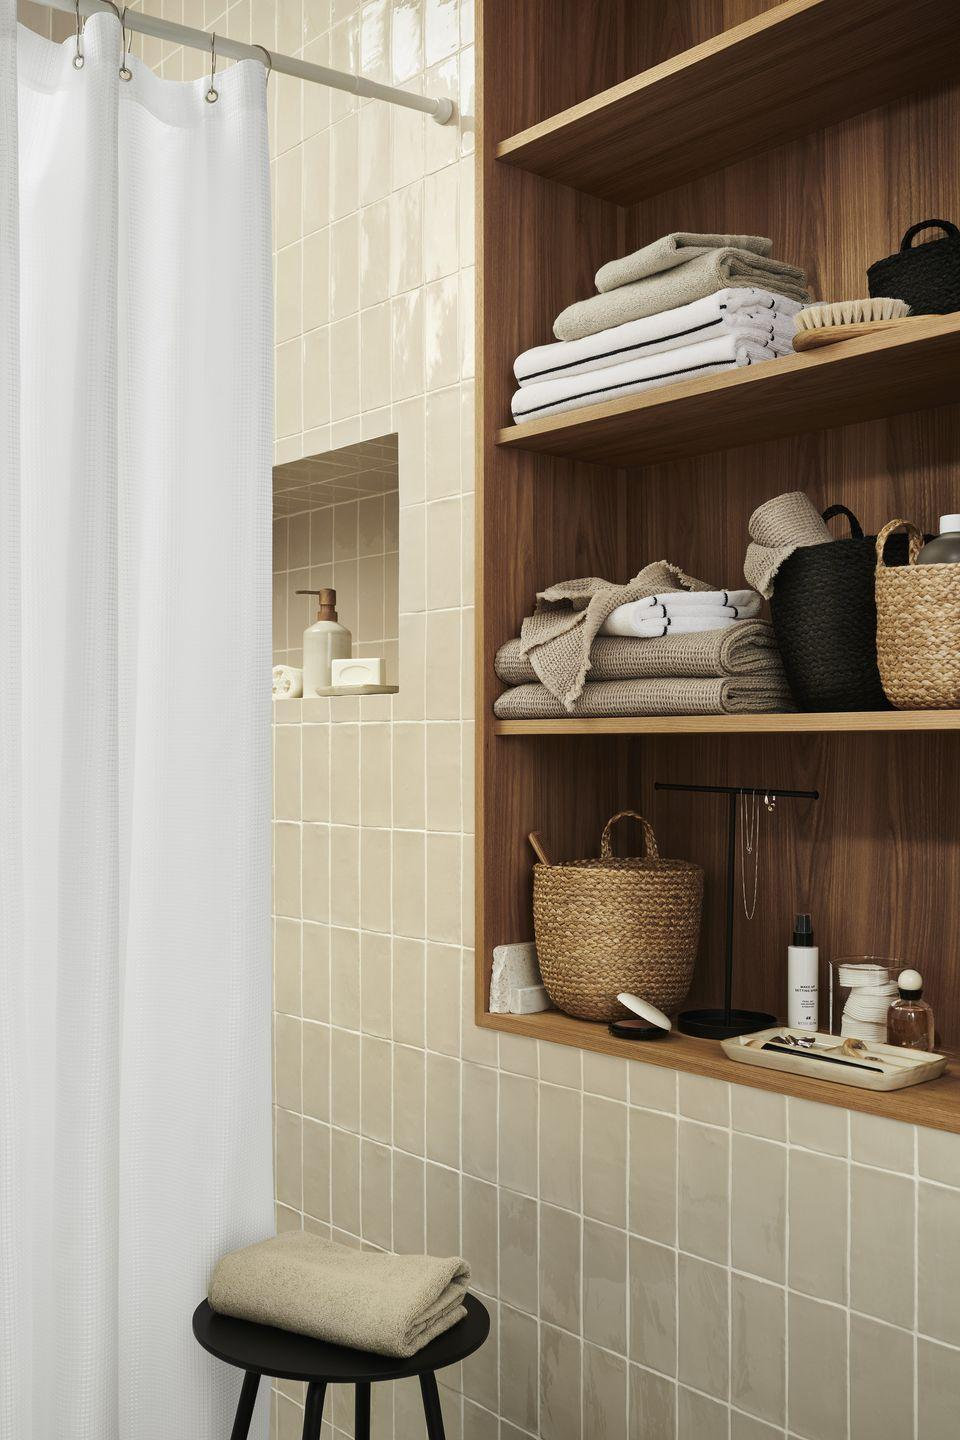 """<p>From wicker baskets to fluffy towels, you'll find everything you need for the <a href=""""https://www.housebeautiful.com/uk/decorate/bathroom/a34935597/dark-bathroom-brighter-winter/"""" rel=""""nofollow noopener"""" target=""""_blank"""" data-ylk=""""slk:bathroom"""" class=""""link rapid-noclick-resp"""">bathroom</a> in the new range. </p><p><a class=""""link rapid-noclick-resp"""" href=""""https://go.redirectingat.com?id=127X1599956&url=https%3A%2F%2Fwww2.hm.com%2Fen_gb%2Fhome.html&sref=https%3A%2F%2Fwww.housebeautiful.com%2Fuk%2Flifestyle%2Fshopping%2Fg35116386%2Fhandm-home-spring%2F"""" rel=""""nofollow noopener"""" target=""""_blank"""" data-ylk=""""slk:SHOP H&M HOME"""">SHOP H&M HOME</a> </p>"""